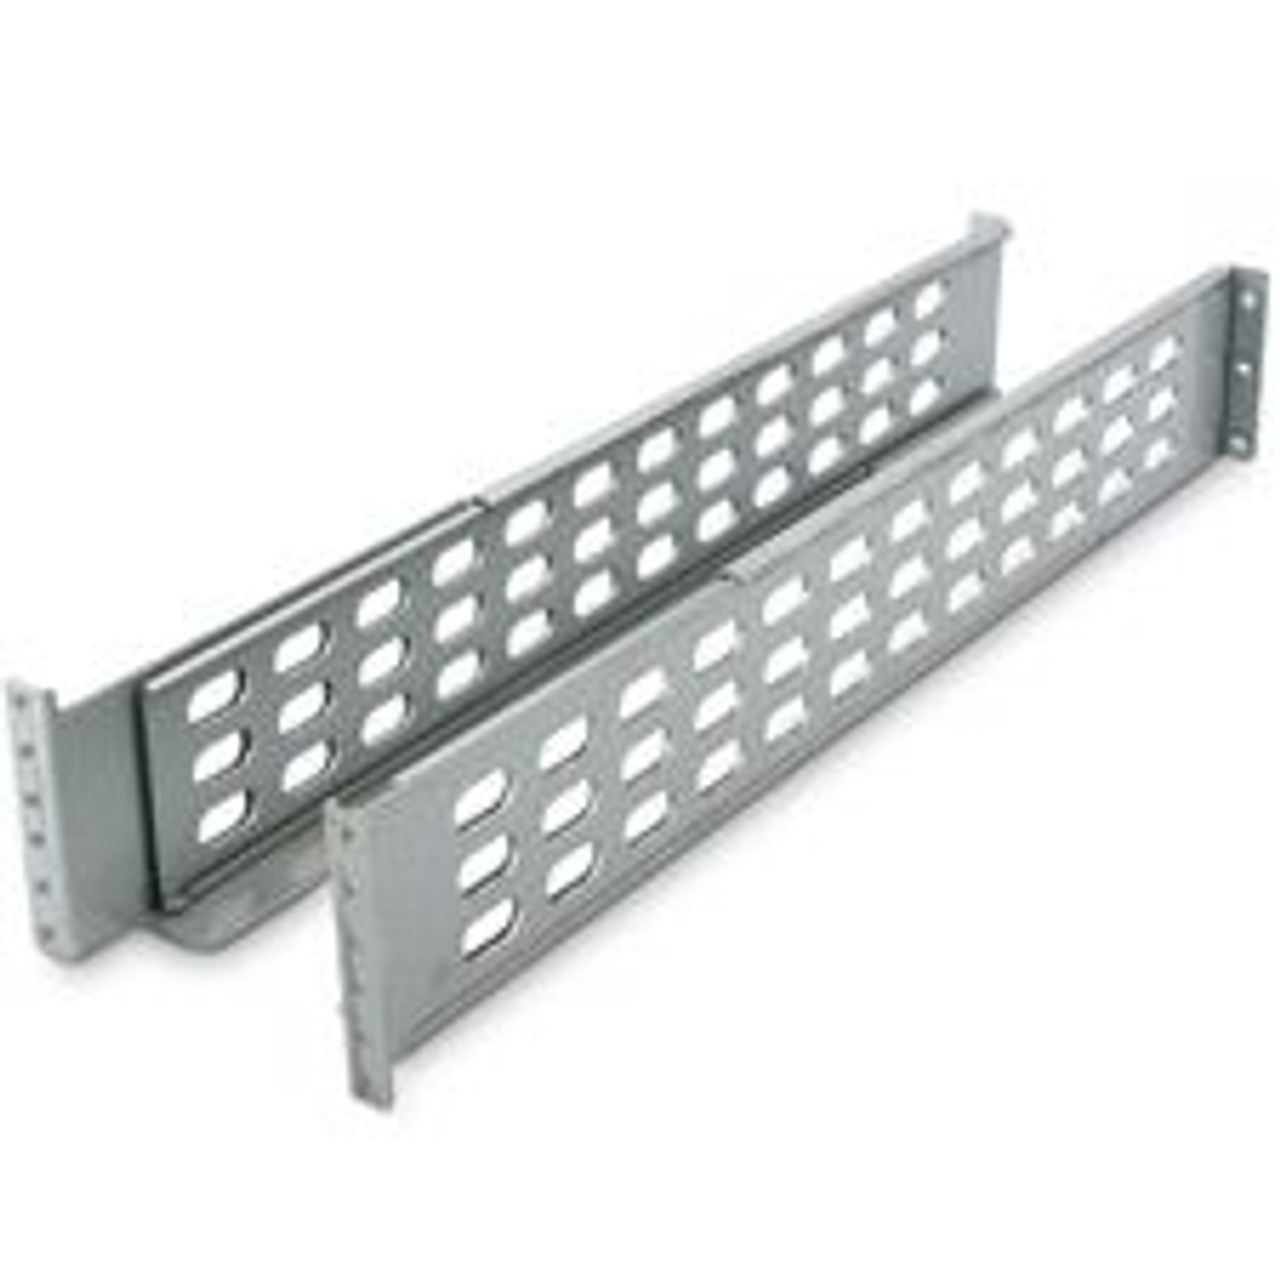 Image for APC 4-Post Rackmount Rails (SU032A) CX Computer Superstore